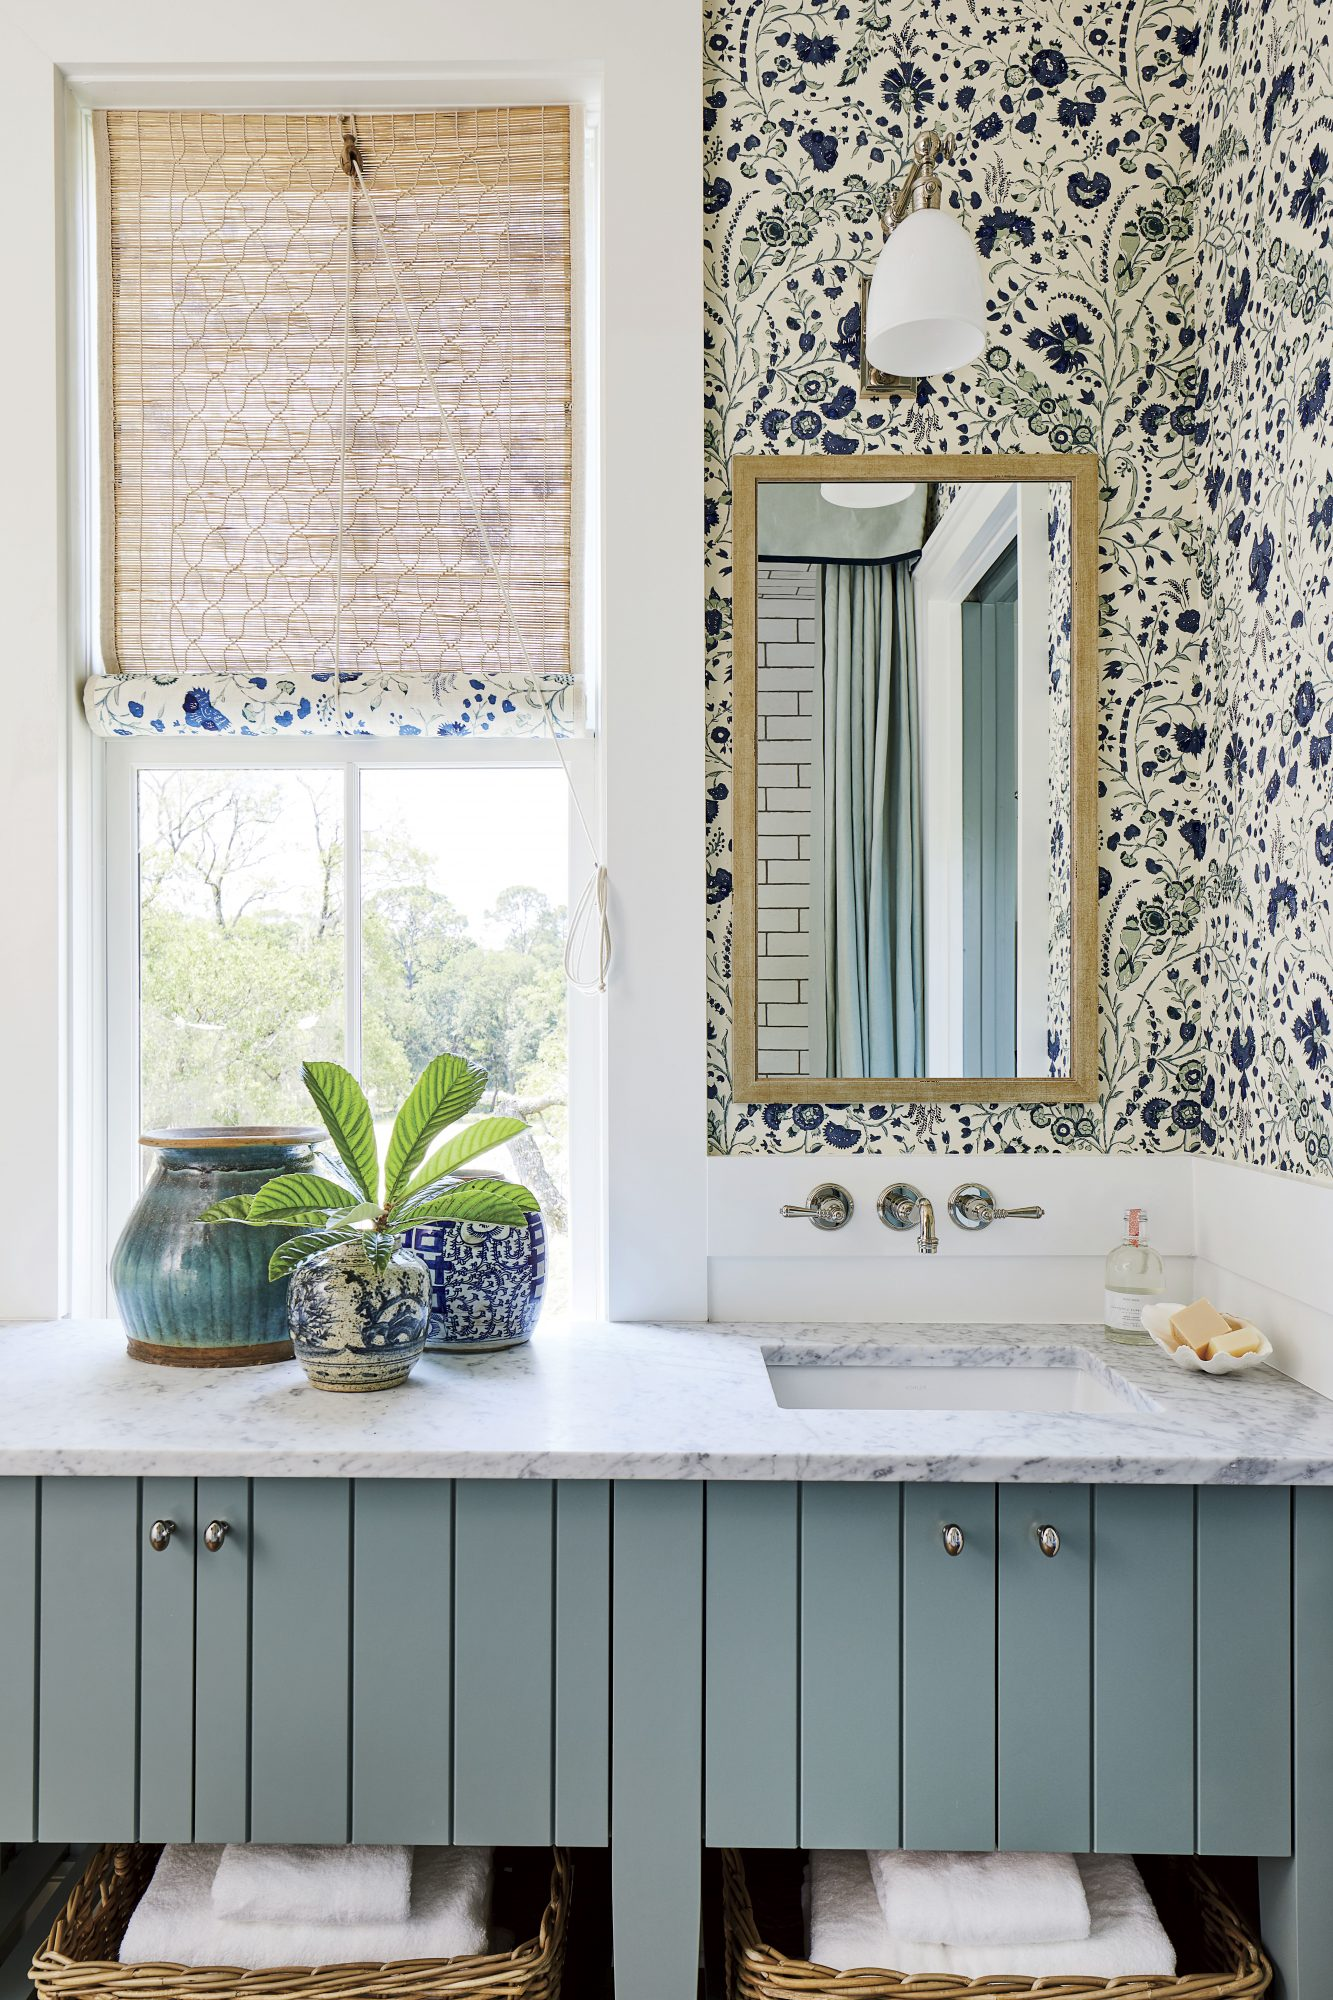 2019 Idea House Queen Guest Bathroom